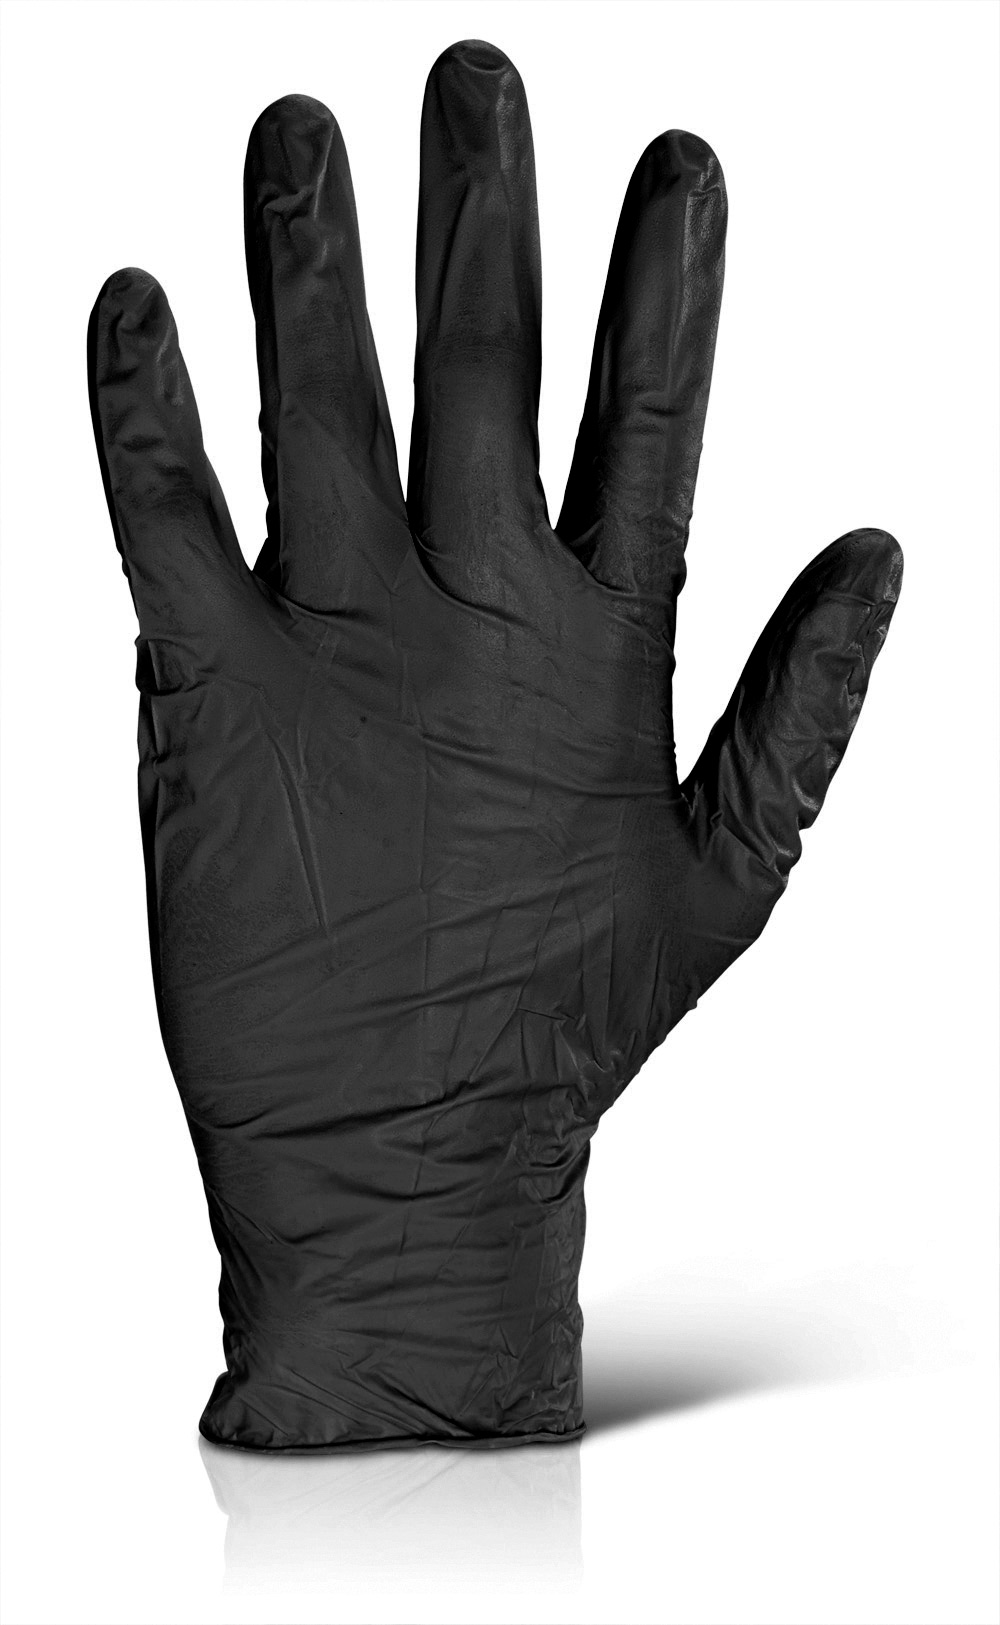 NITRILE EXAMINATION GLOVES POWDER FREE - NDGPF